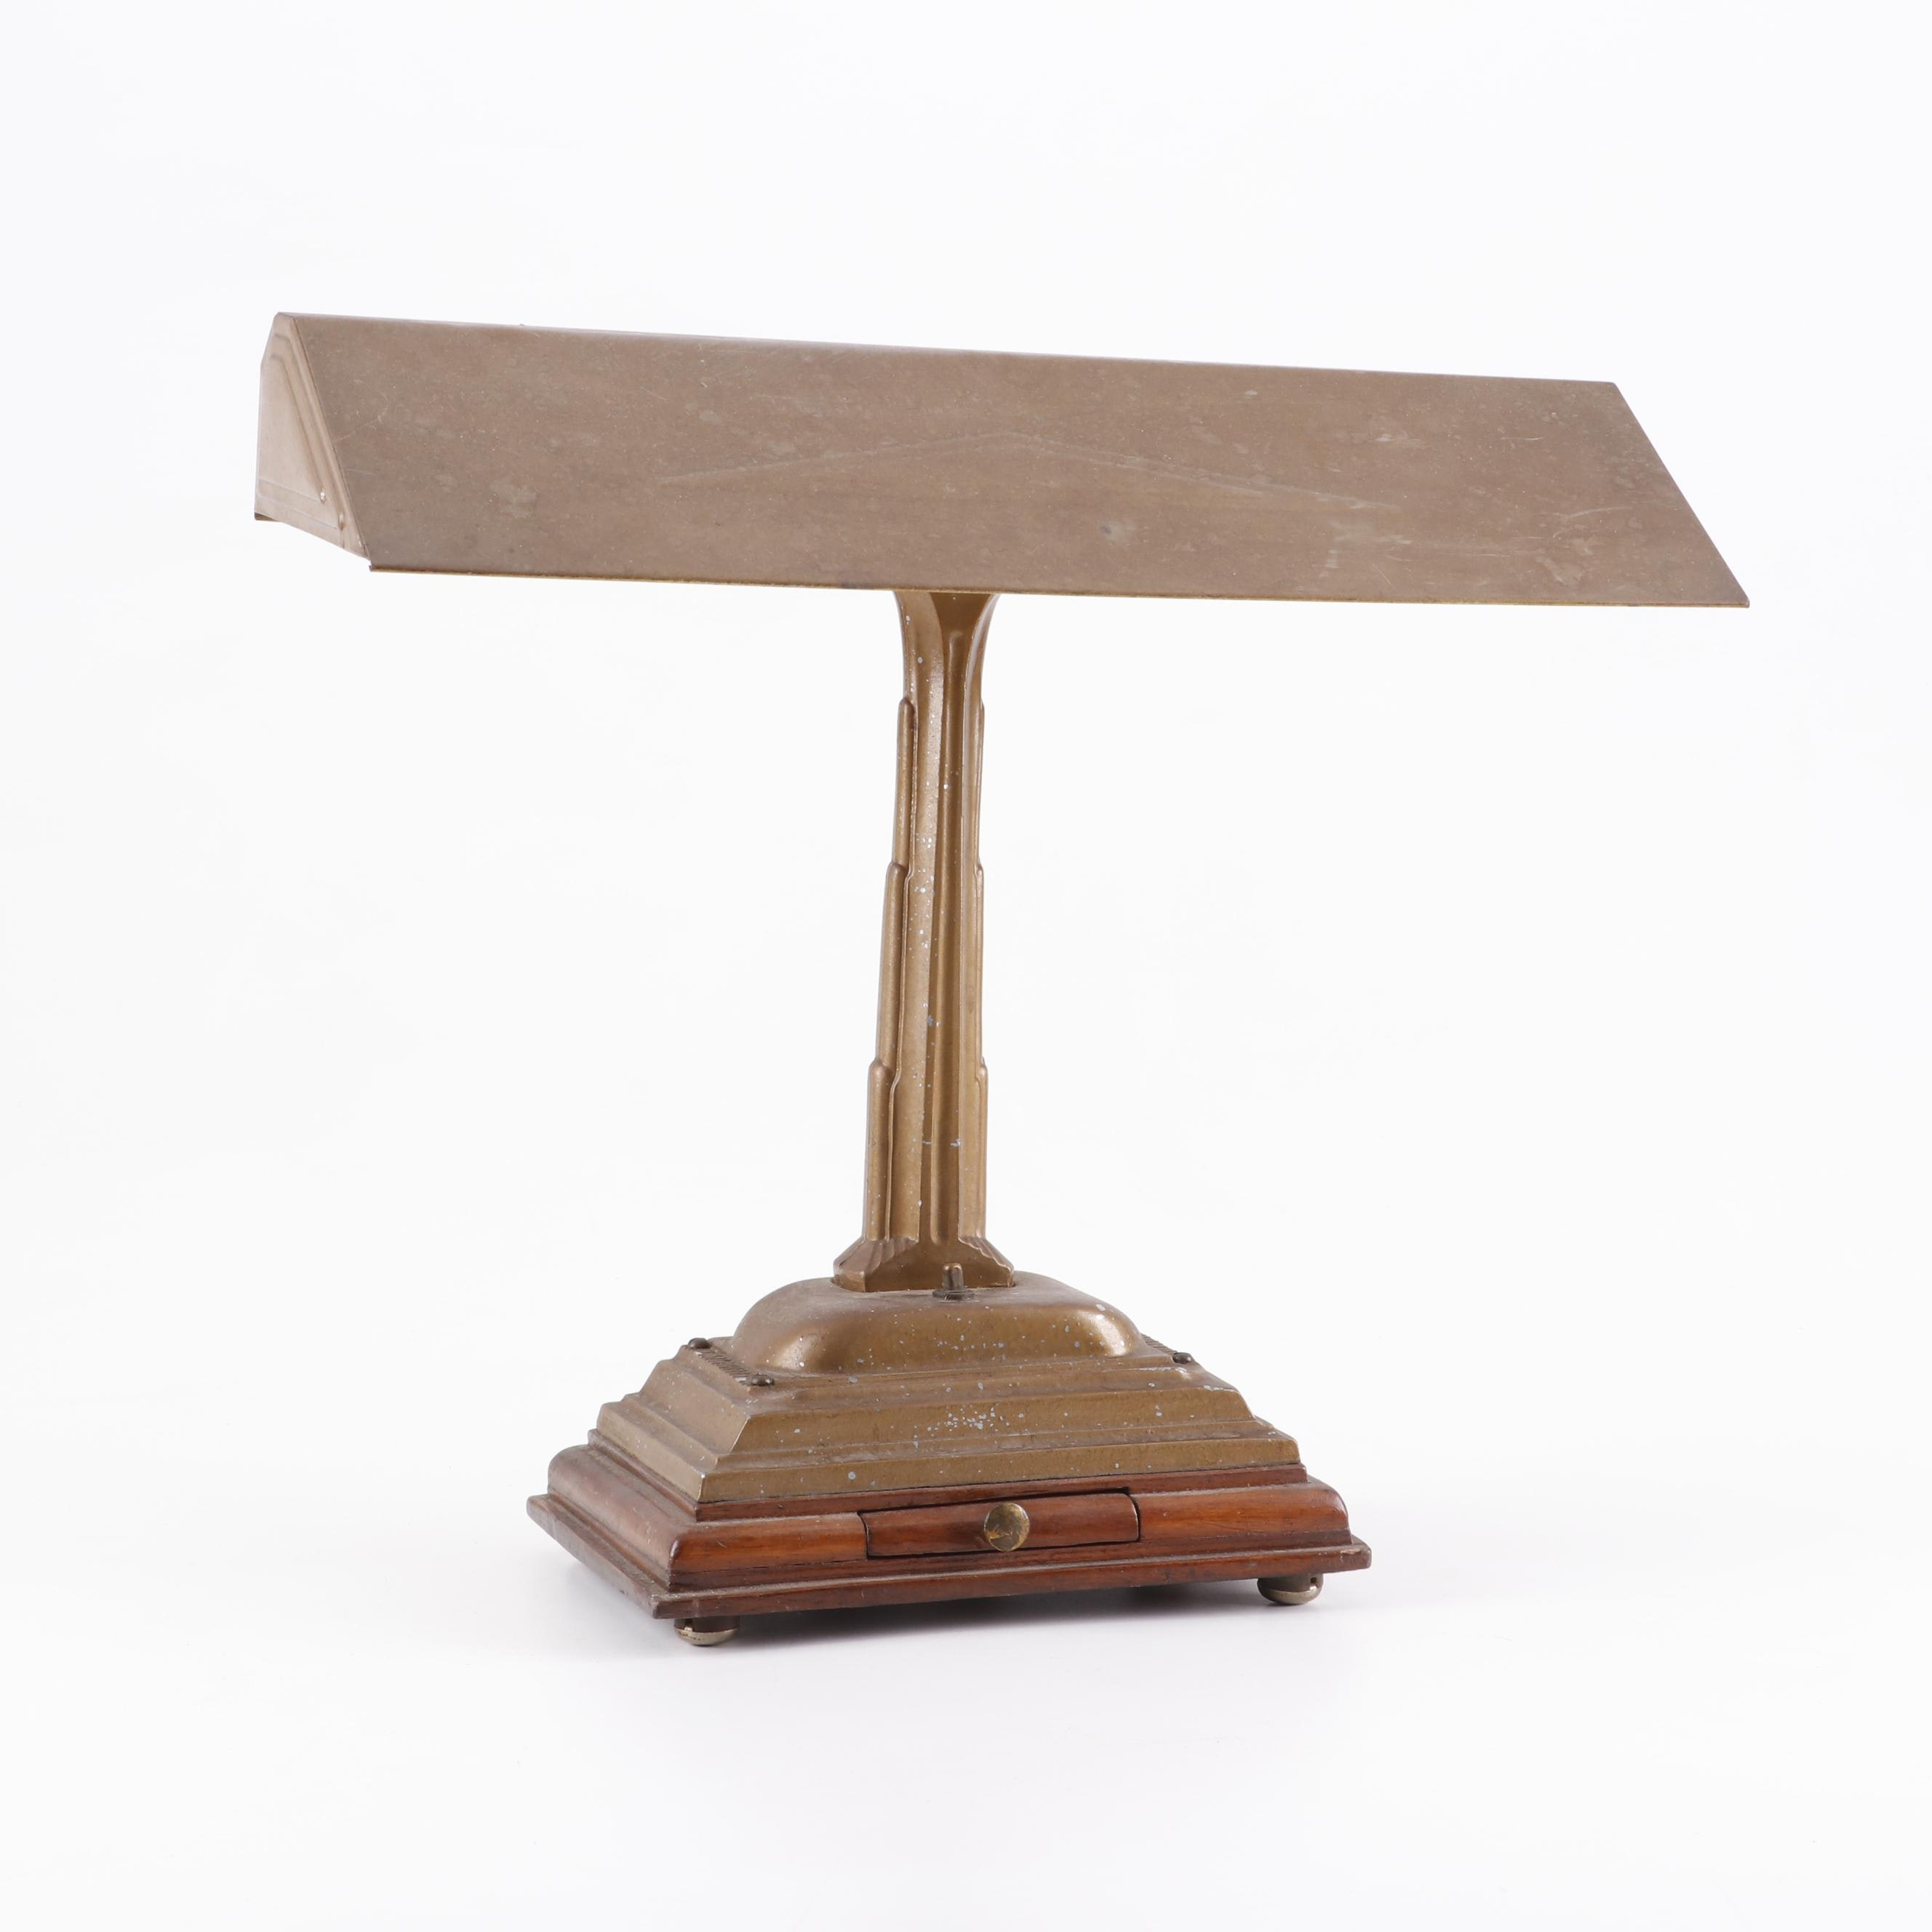 Metal Desk Lamp with Drawer, Early to Mid 20th Century